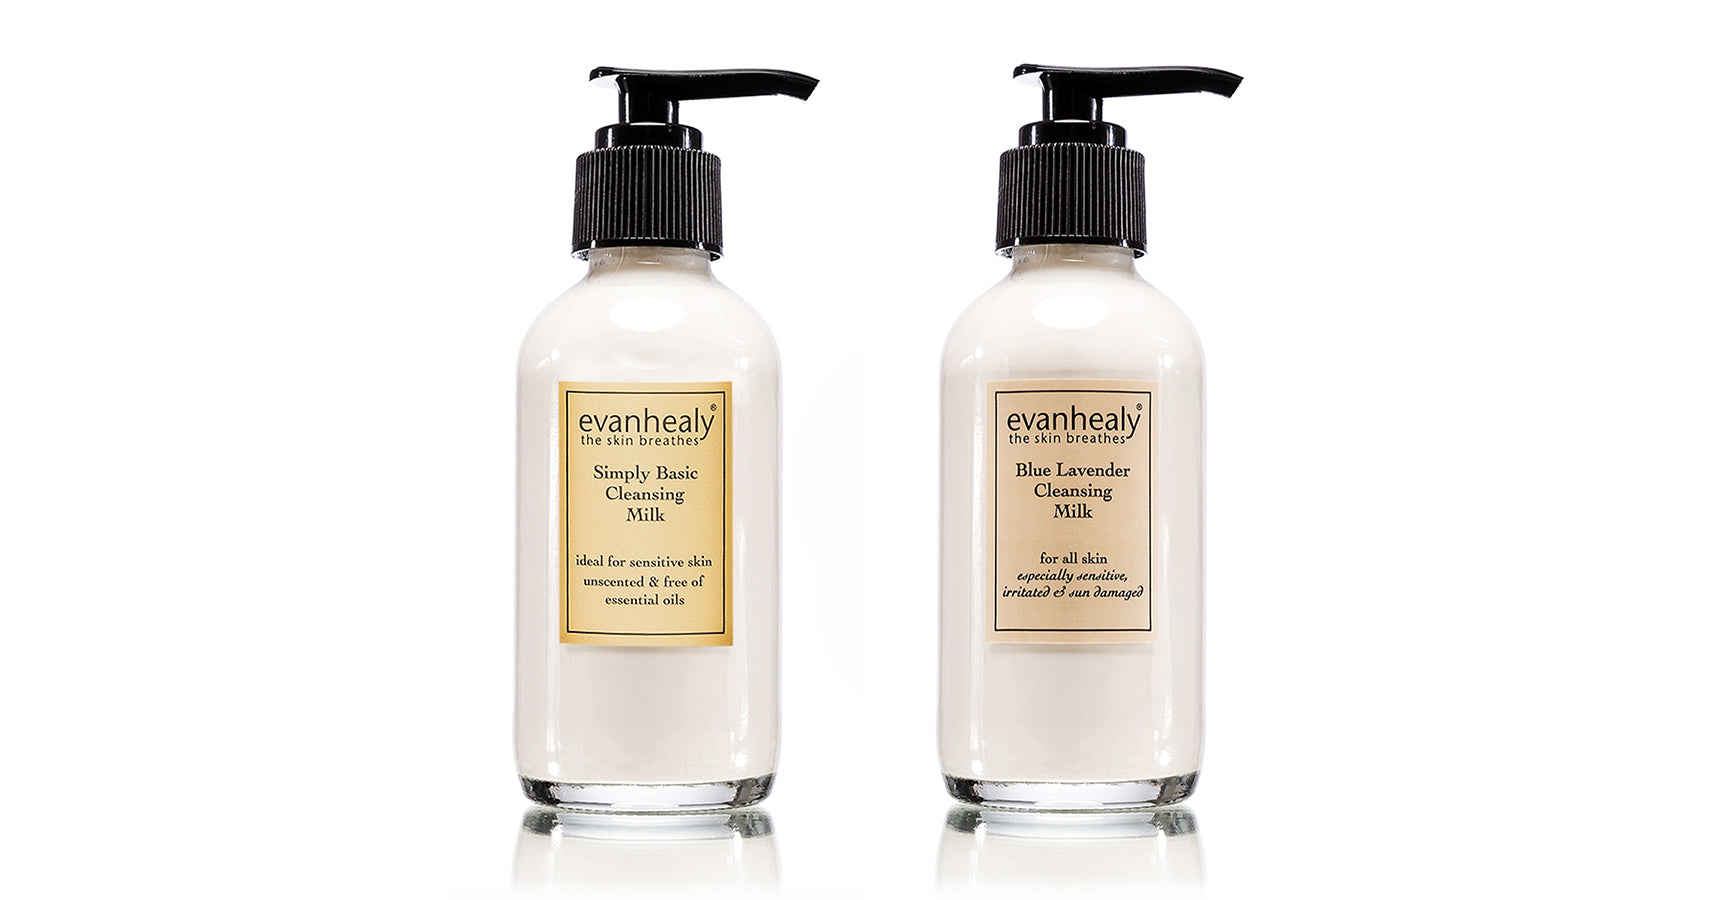 evanhealy Simply Cleansing Milk and Blue Lavender Cleansing Milk